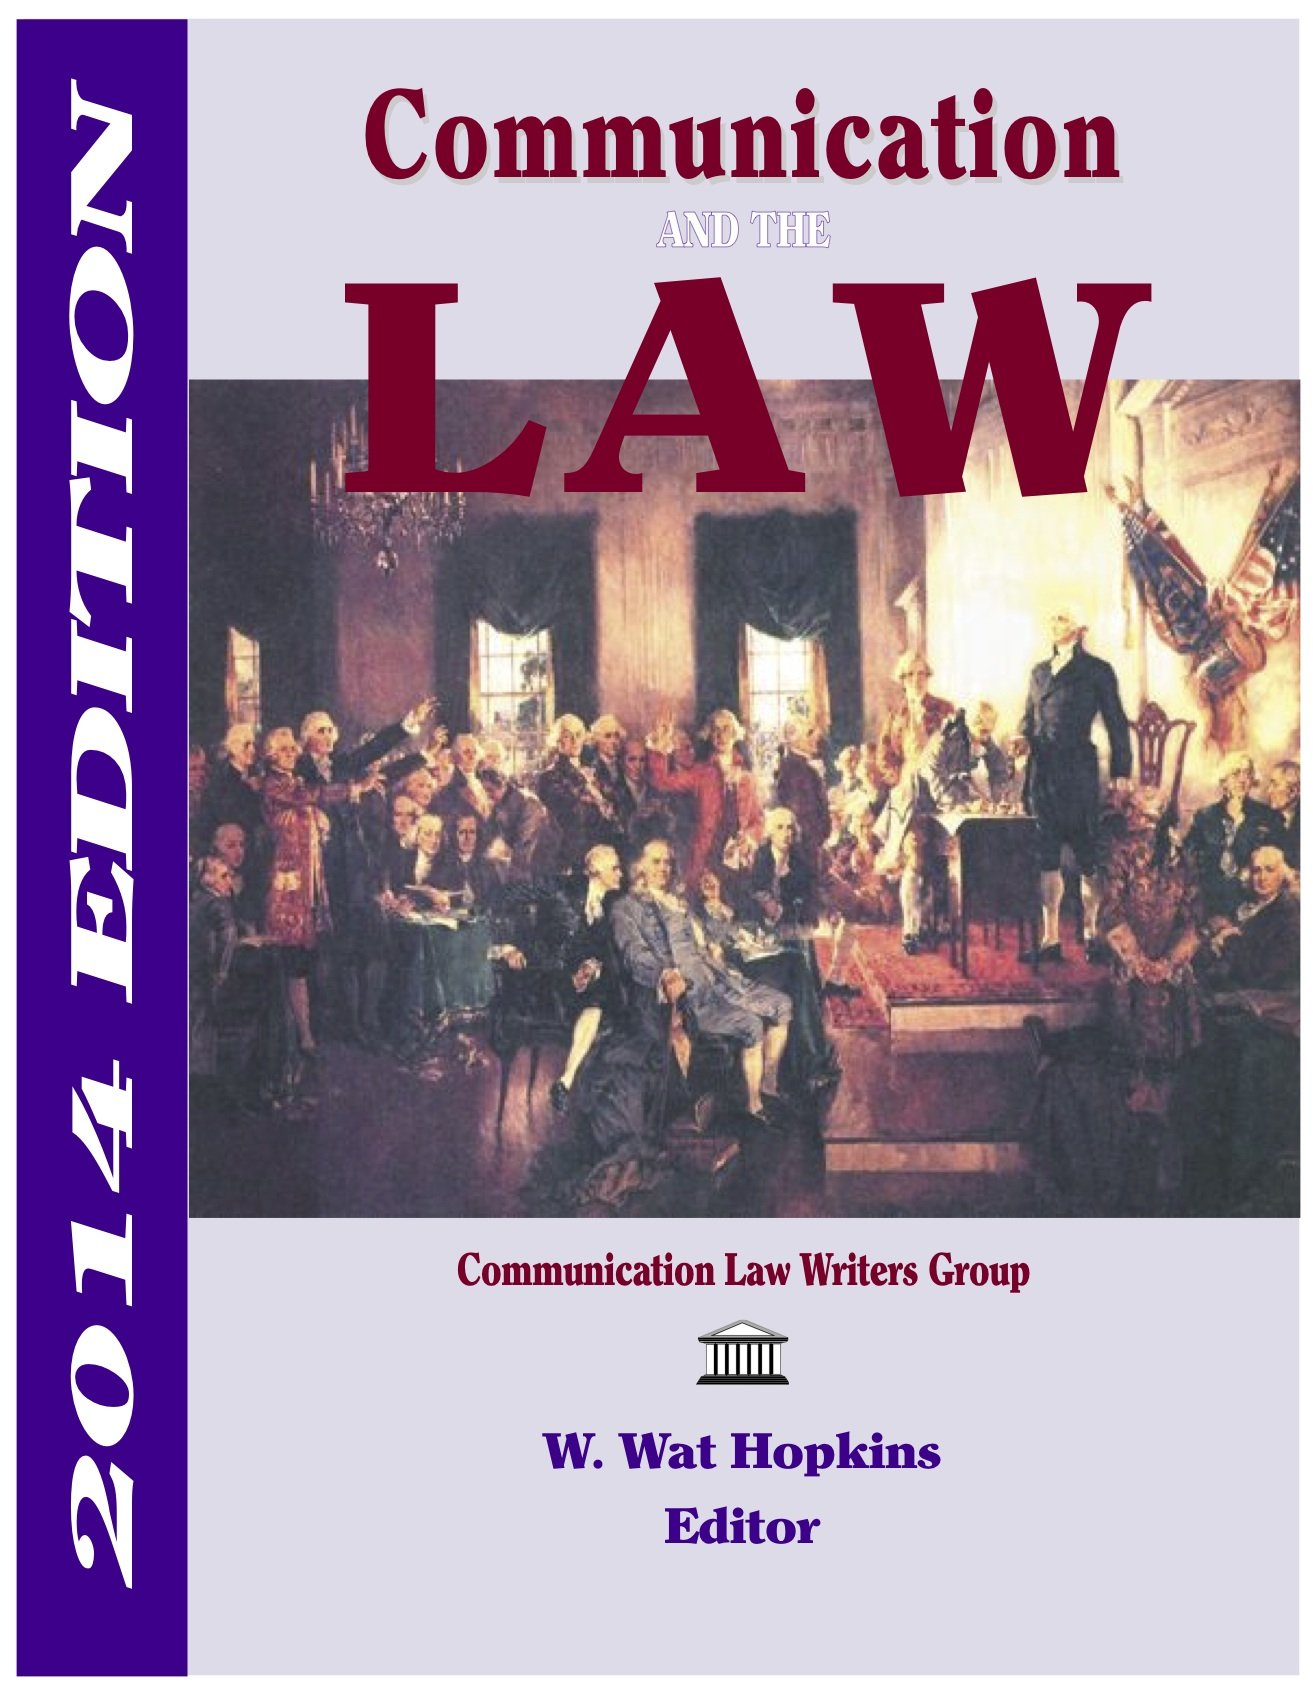 Communication and the Law 2014 Paperback – 2014 W. Wat Hopkins n/a 1885219482